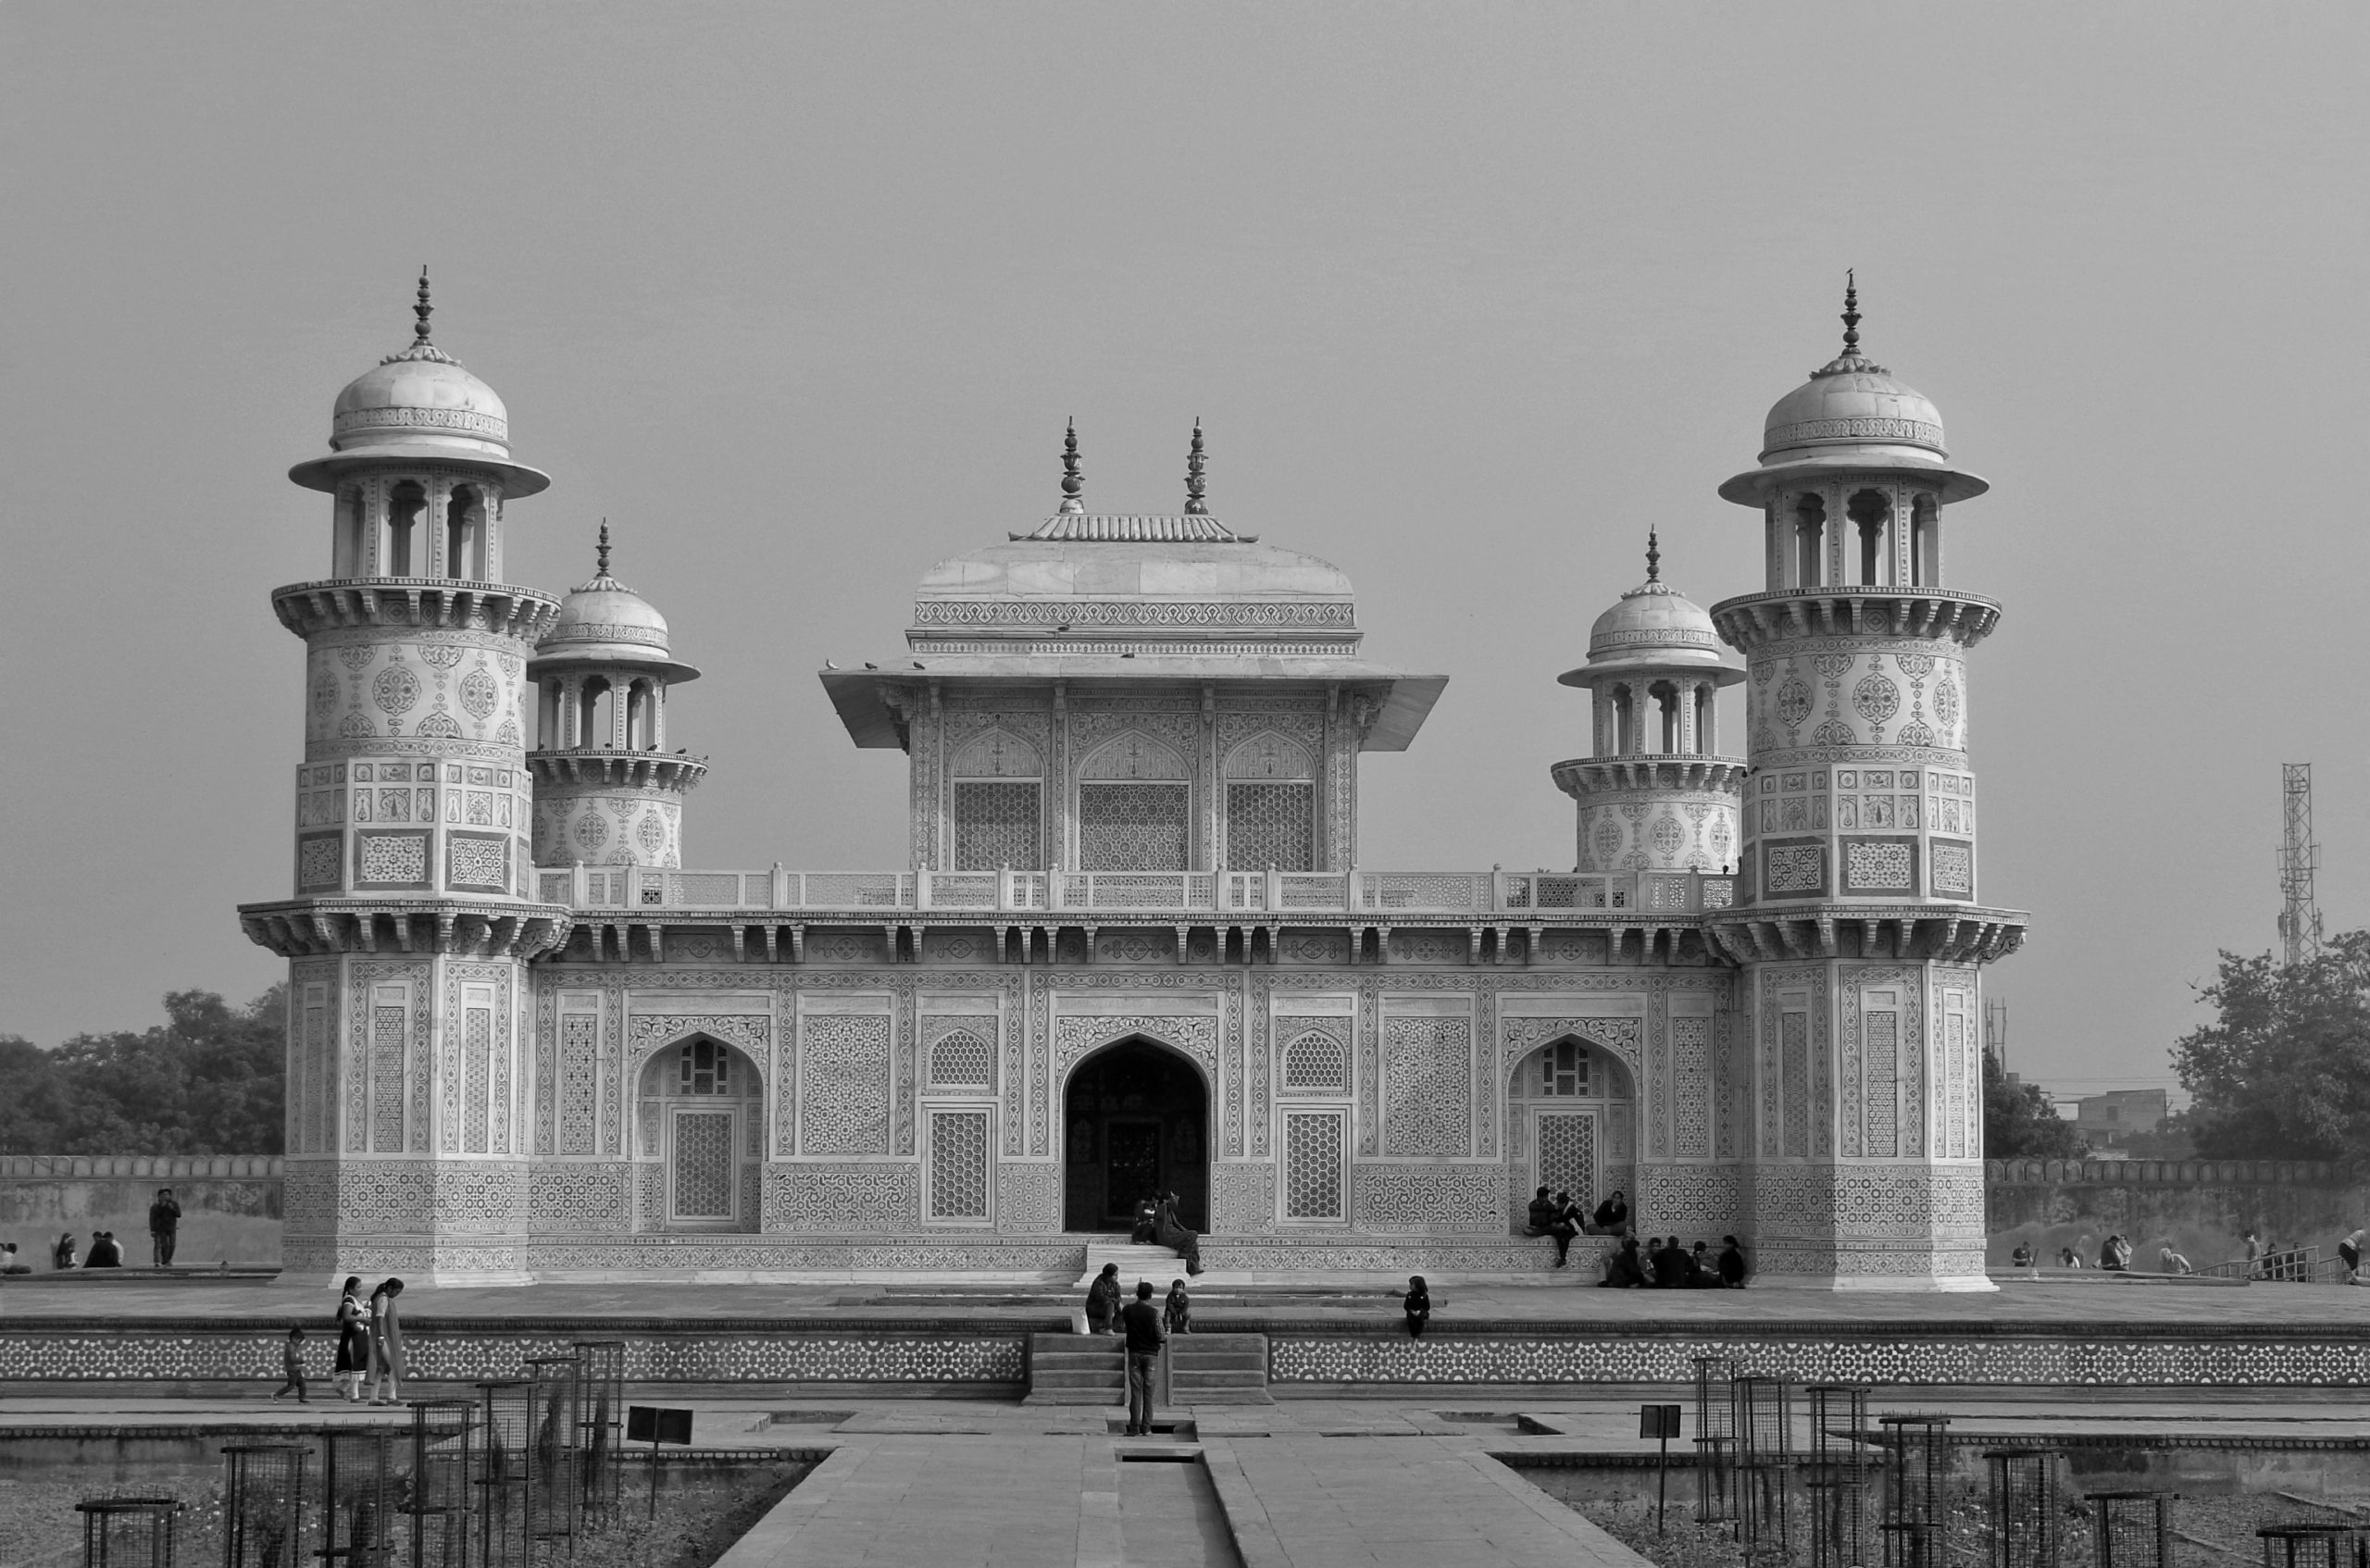 Itmad-ud-Daula Tomb in Agra